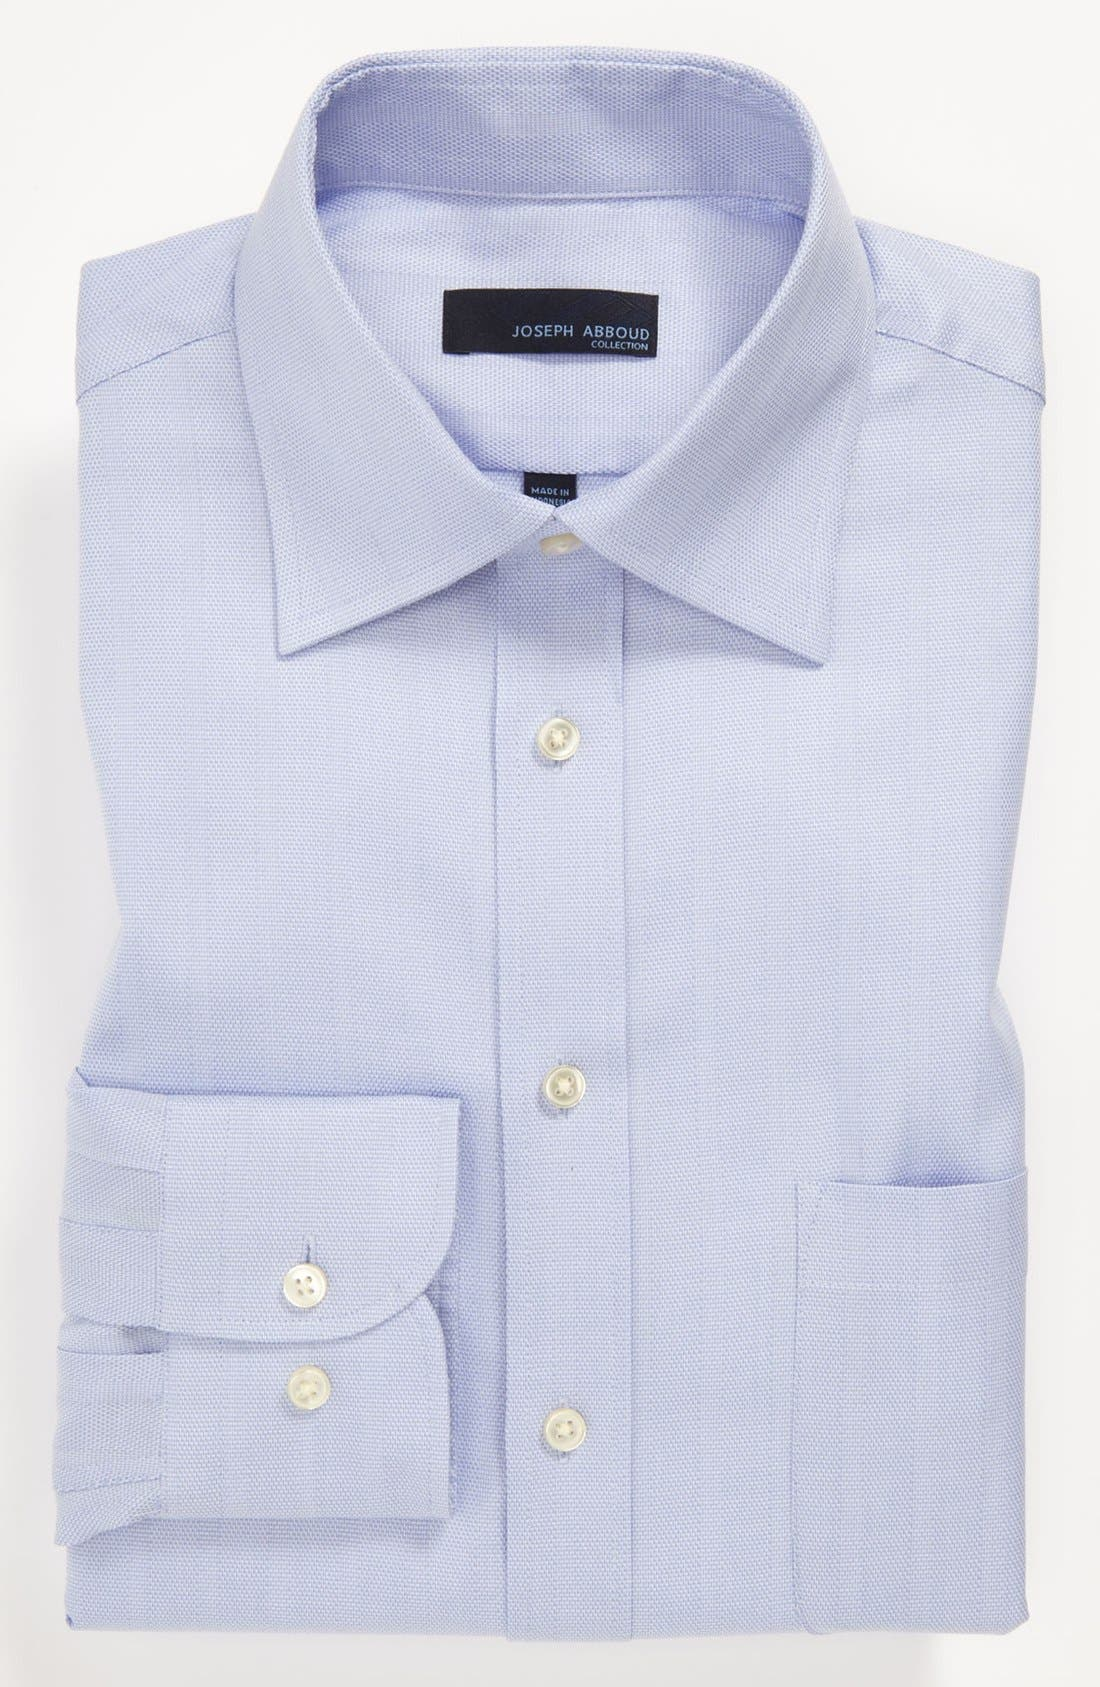 Alternate Image 1 Selected - Joseph Abboud Regular Fit Dress Shirt